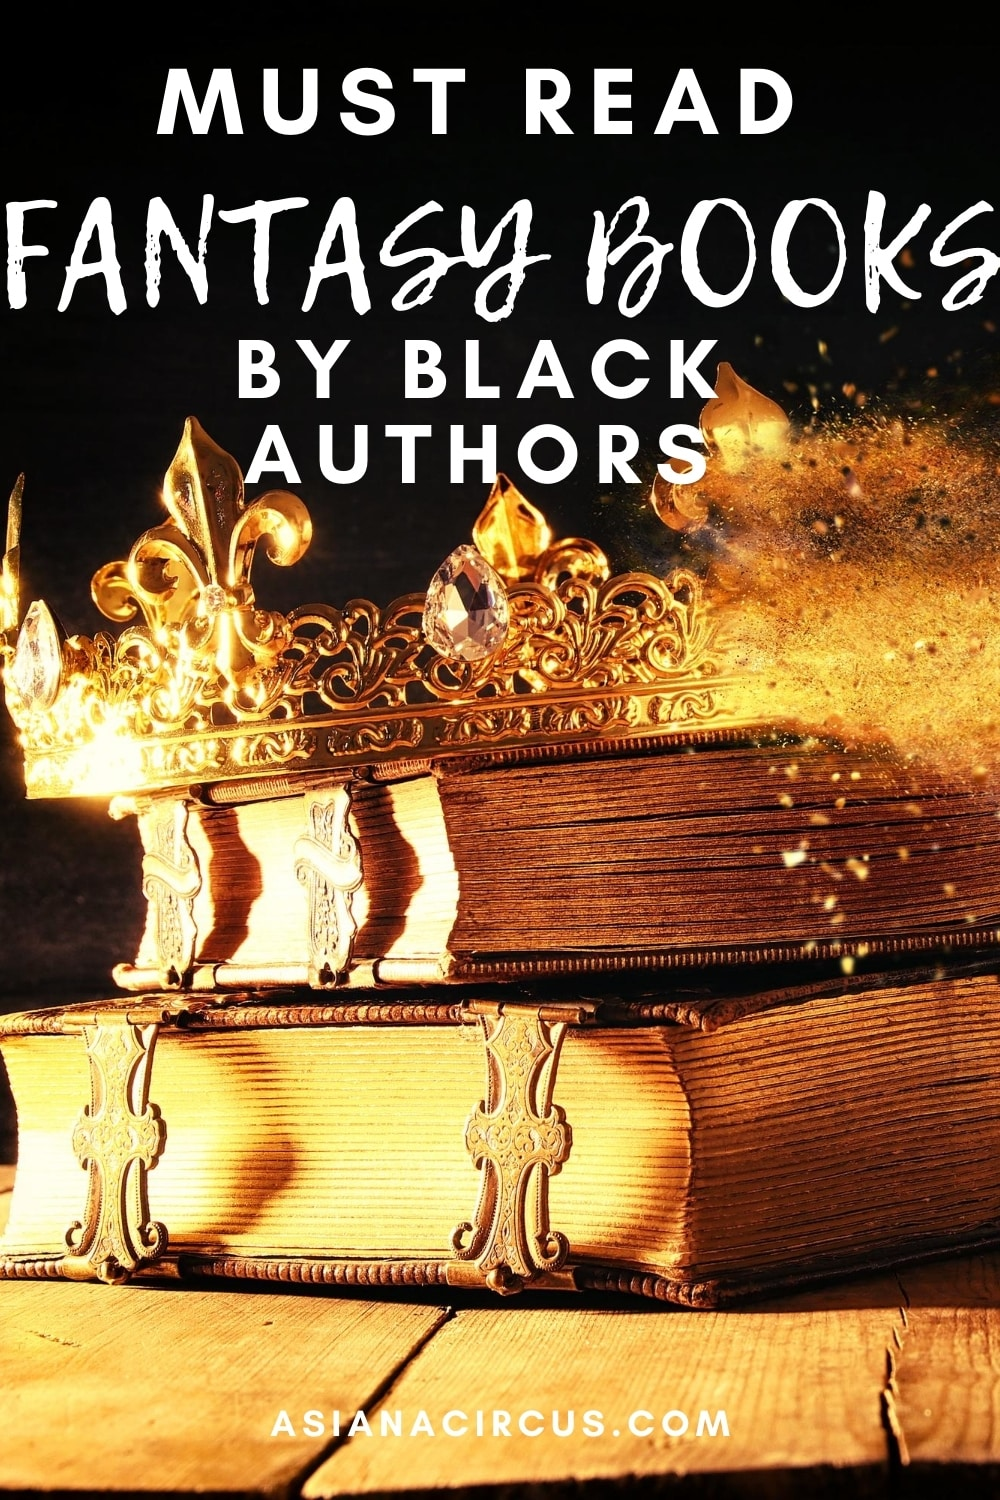 Best fantasy books by black authors you must read